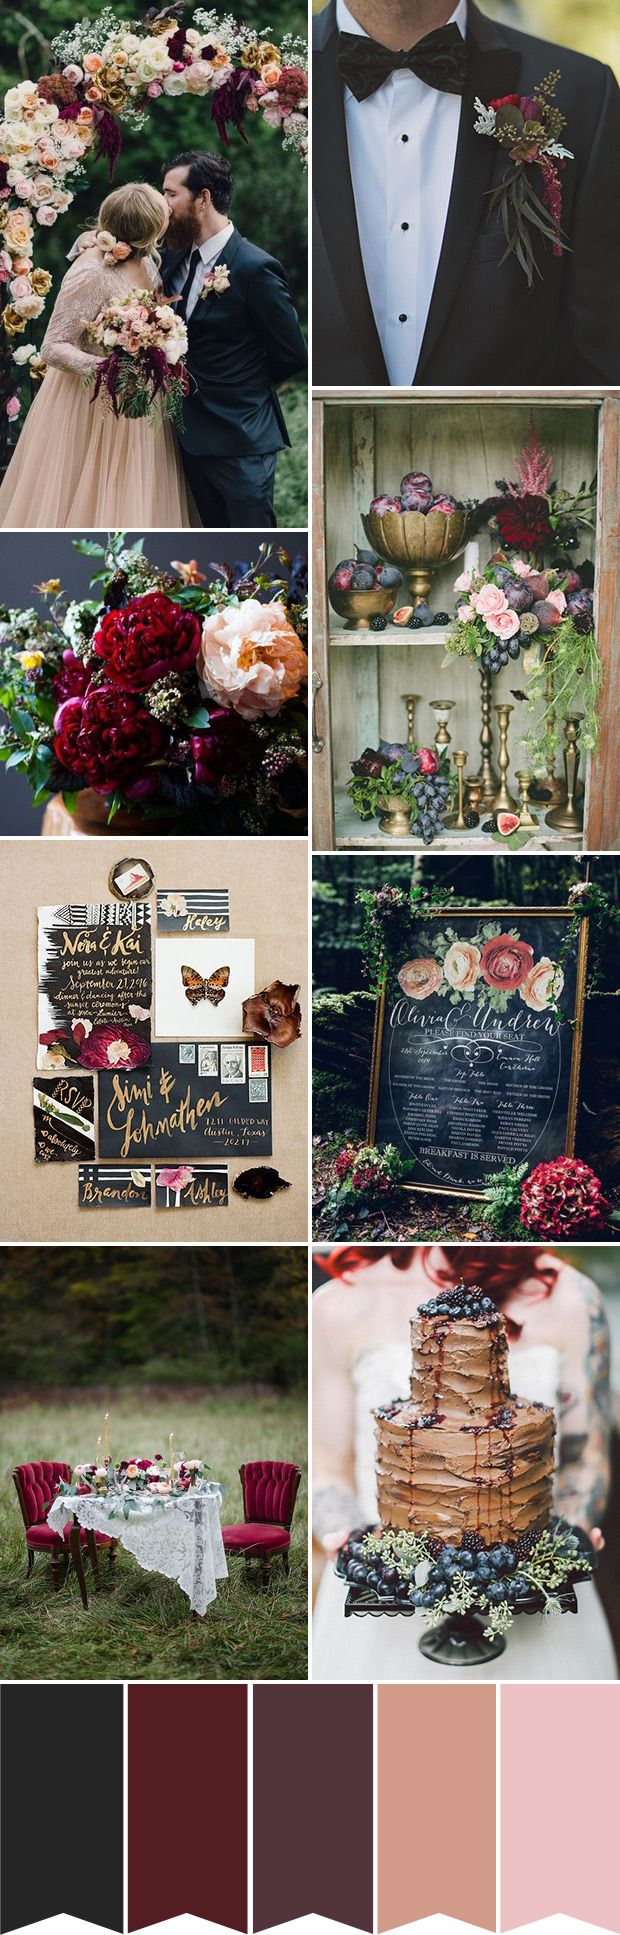 Dark Woodland Romance - A Berry Red and Black Winter Wedding Palette | OneFabDay.com